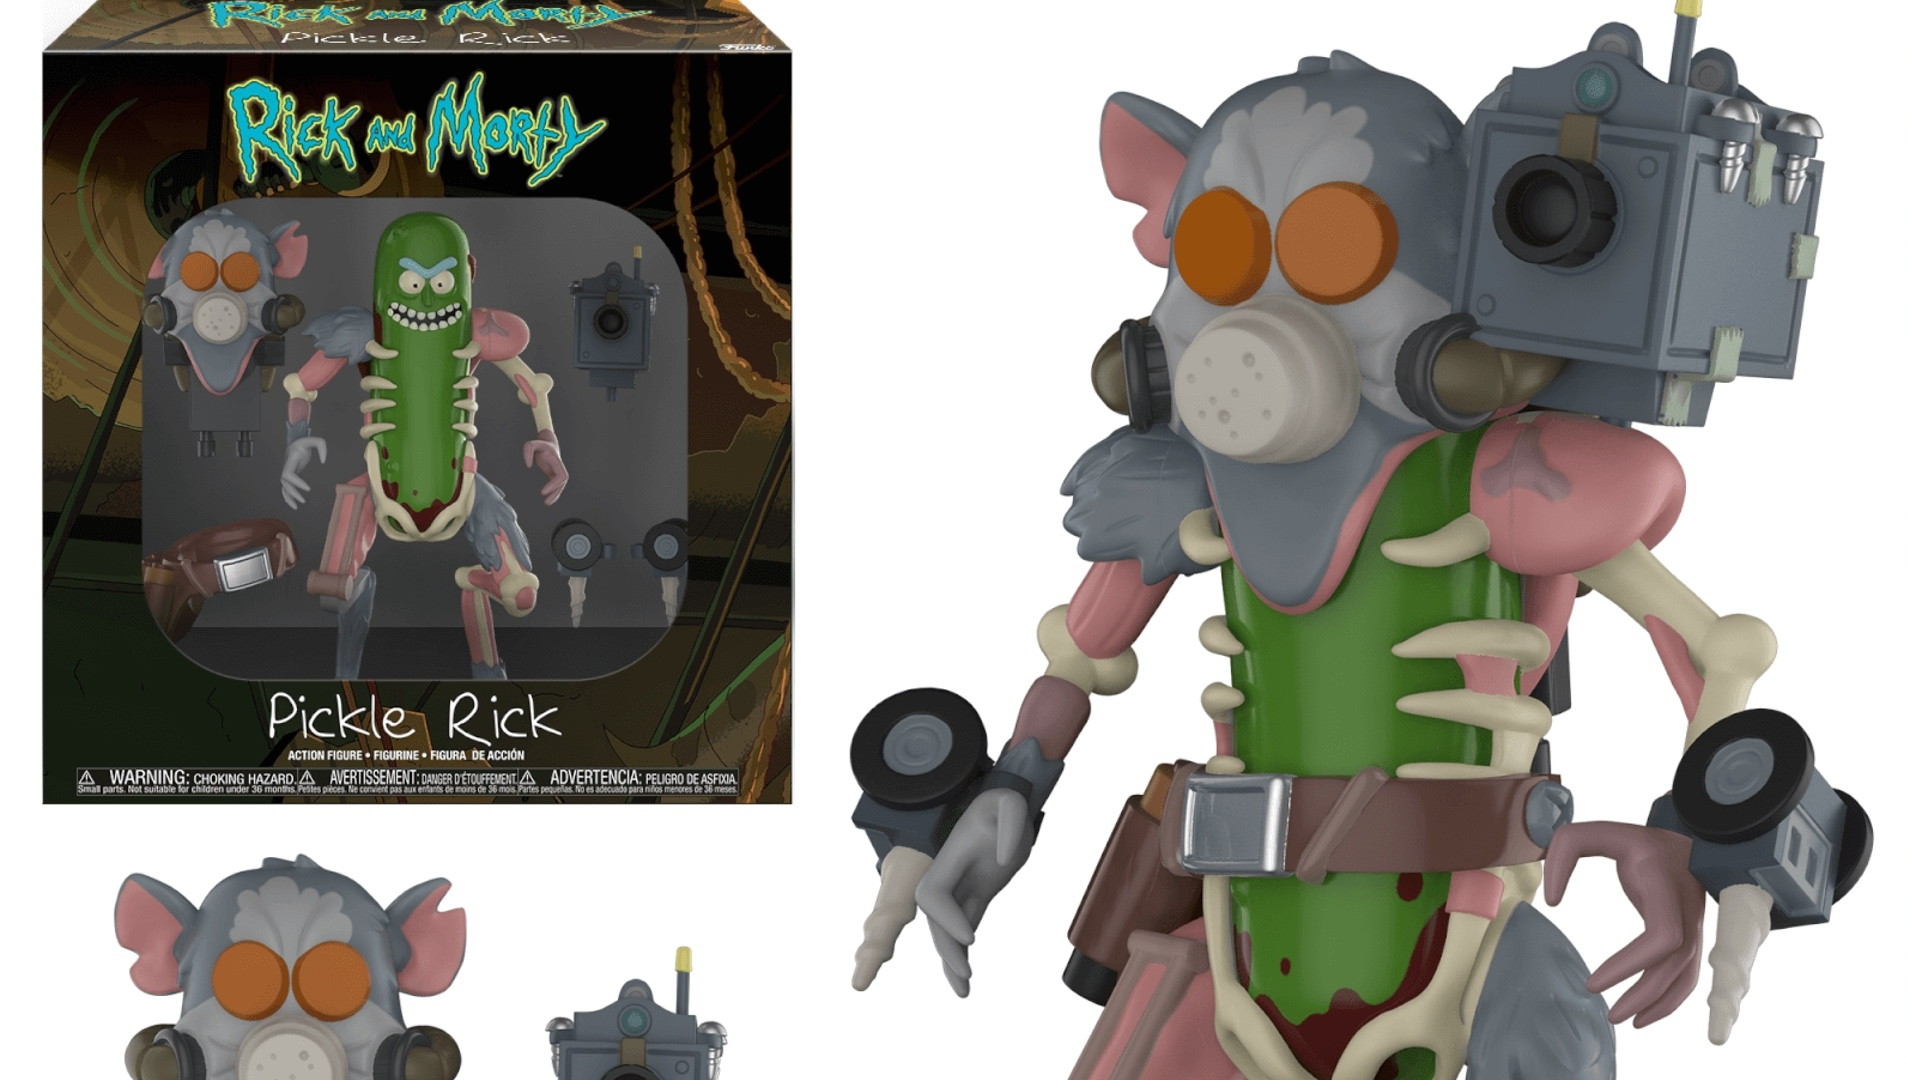 126cf61a192 RICK AND MORTY's Pickle Rick Gets an Awesome Action Figure From Funko —  GeekTyrant